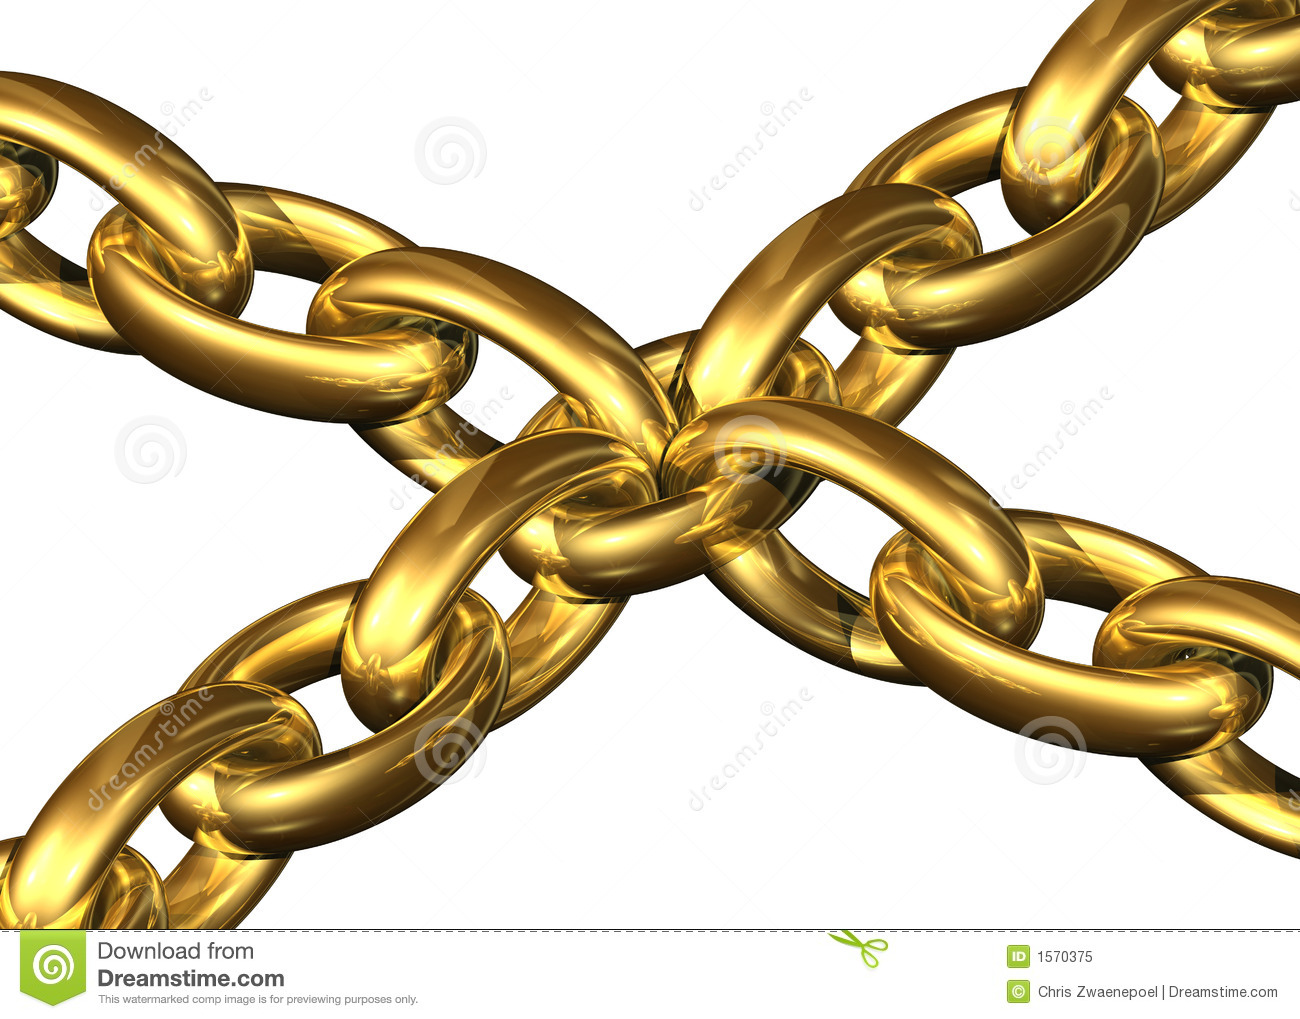 Golden Chains Kept Toghether By A Central Chain Element Royalty Free ...